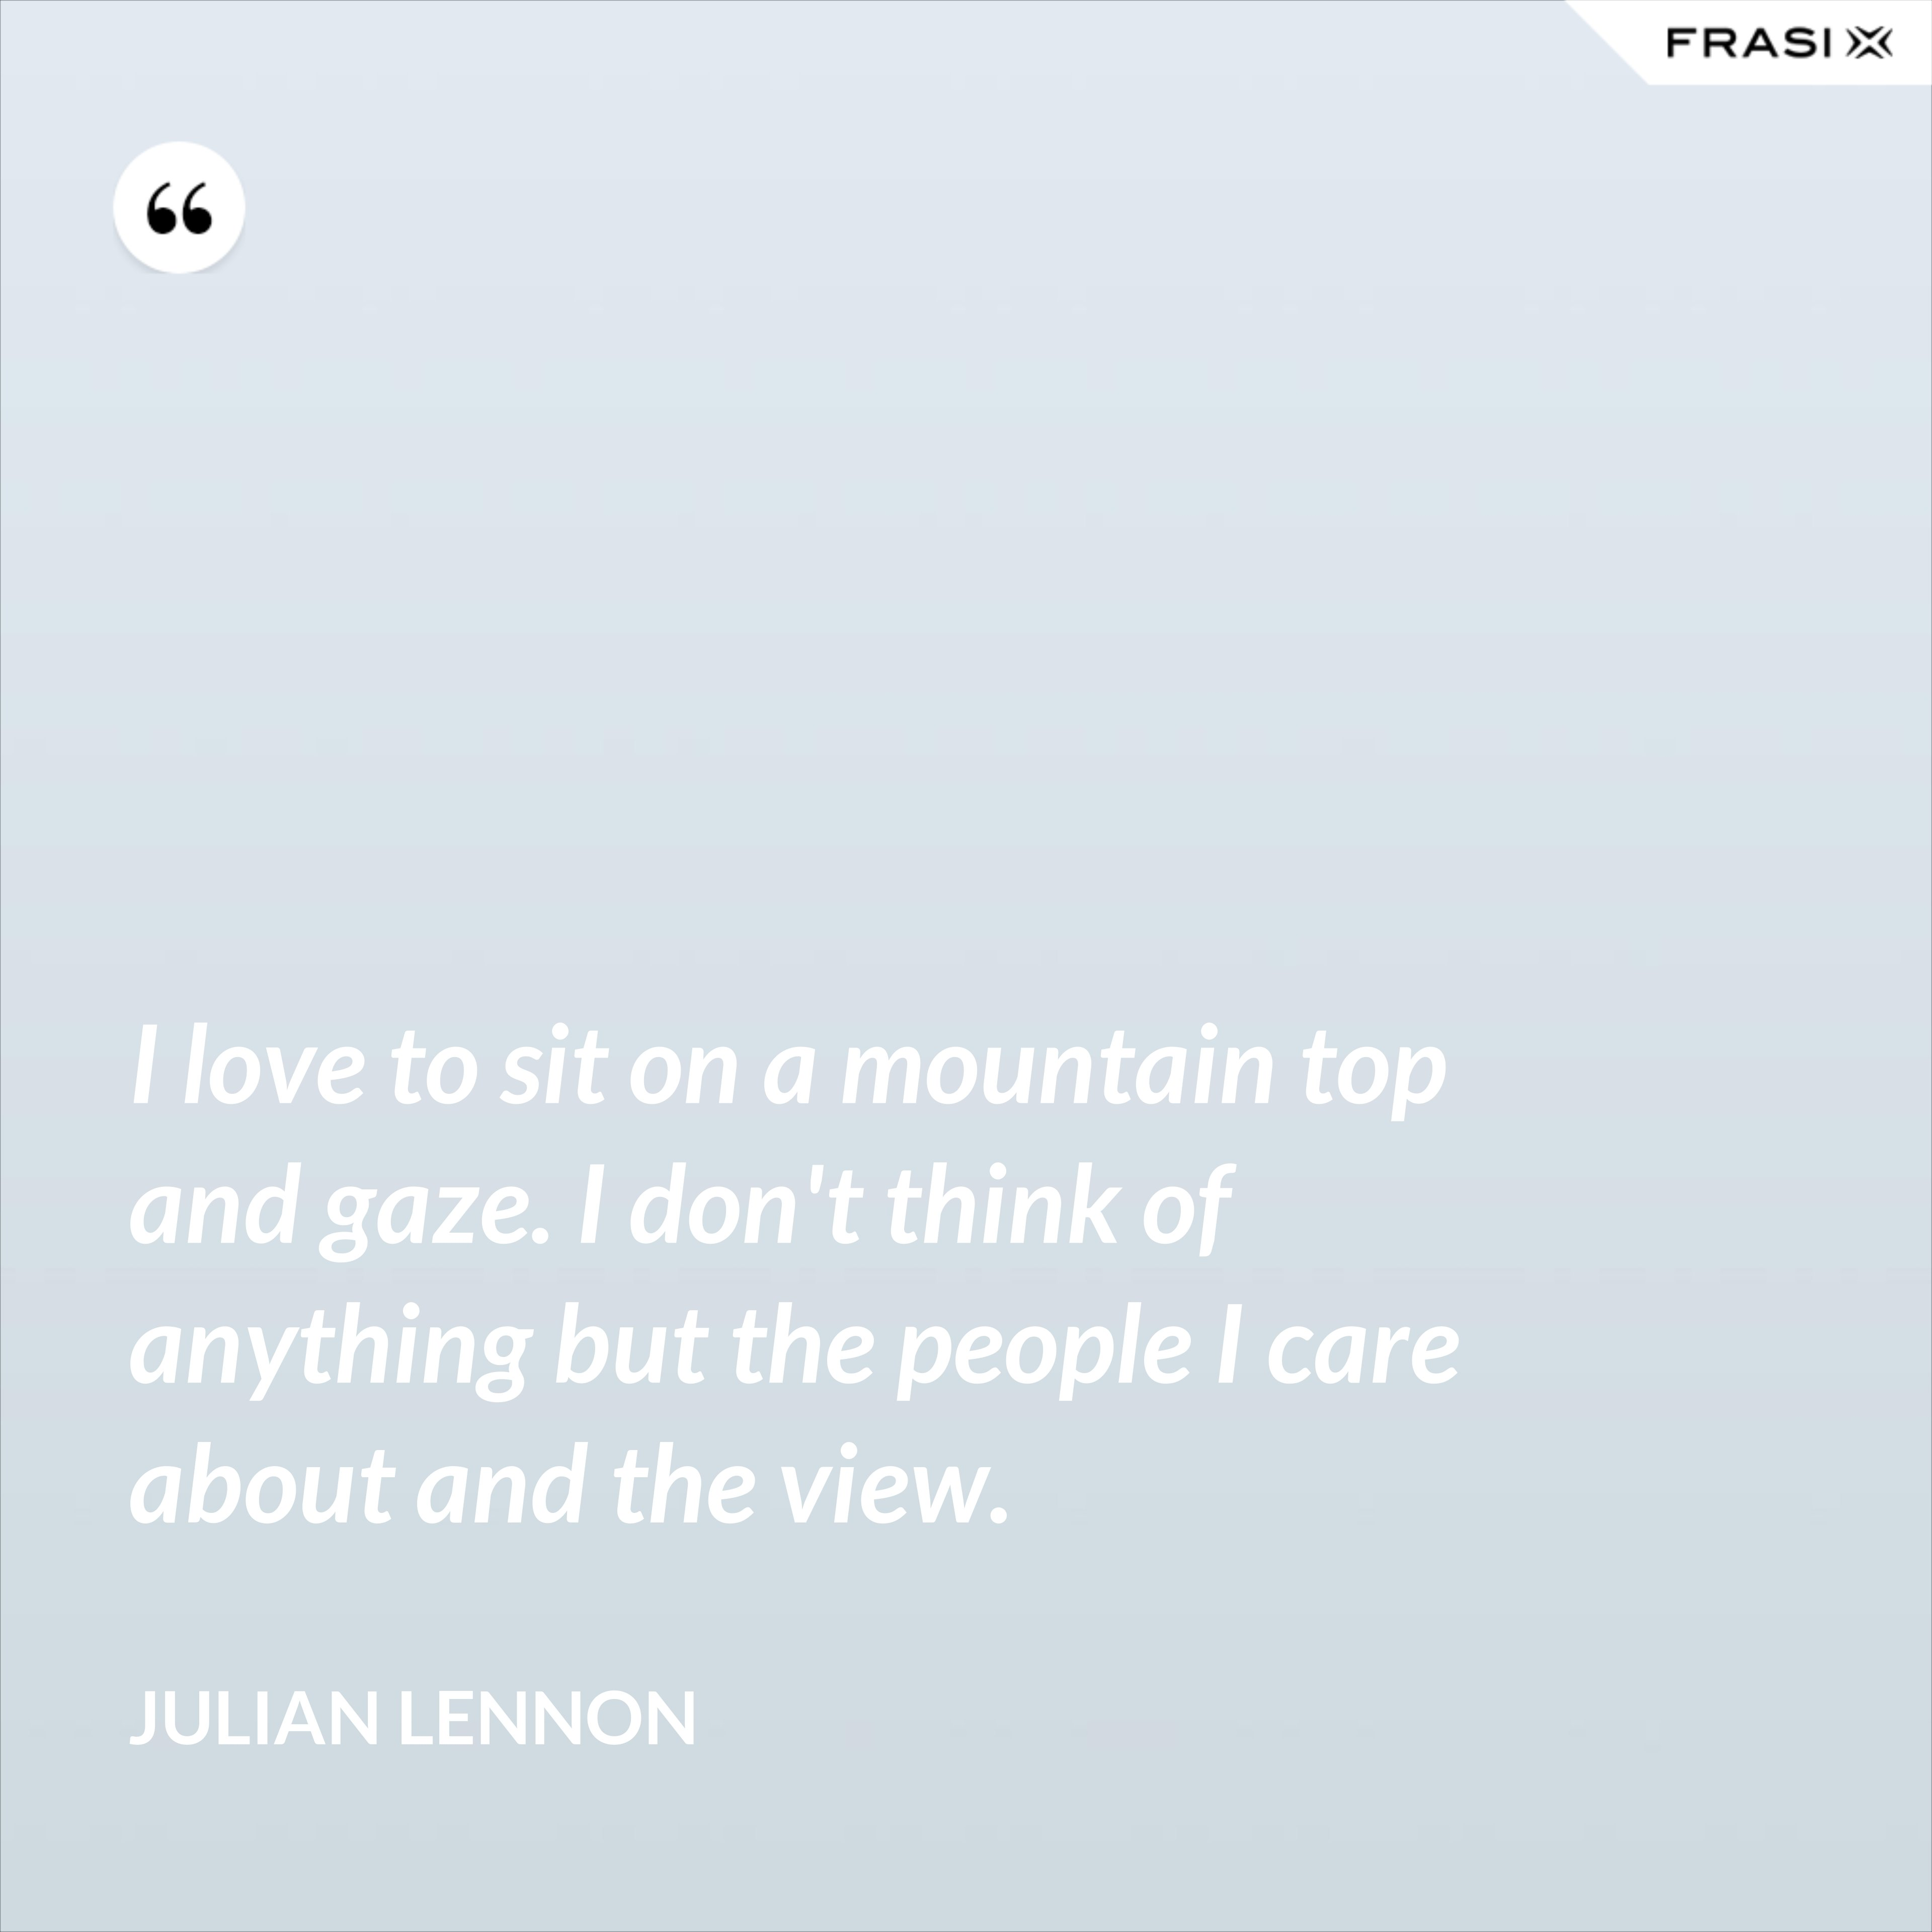 I love to sit on a mountain top and gaze. I don't think of anything but the people I care about and the view. - Julian Lennon